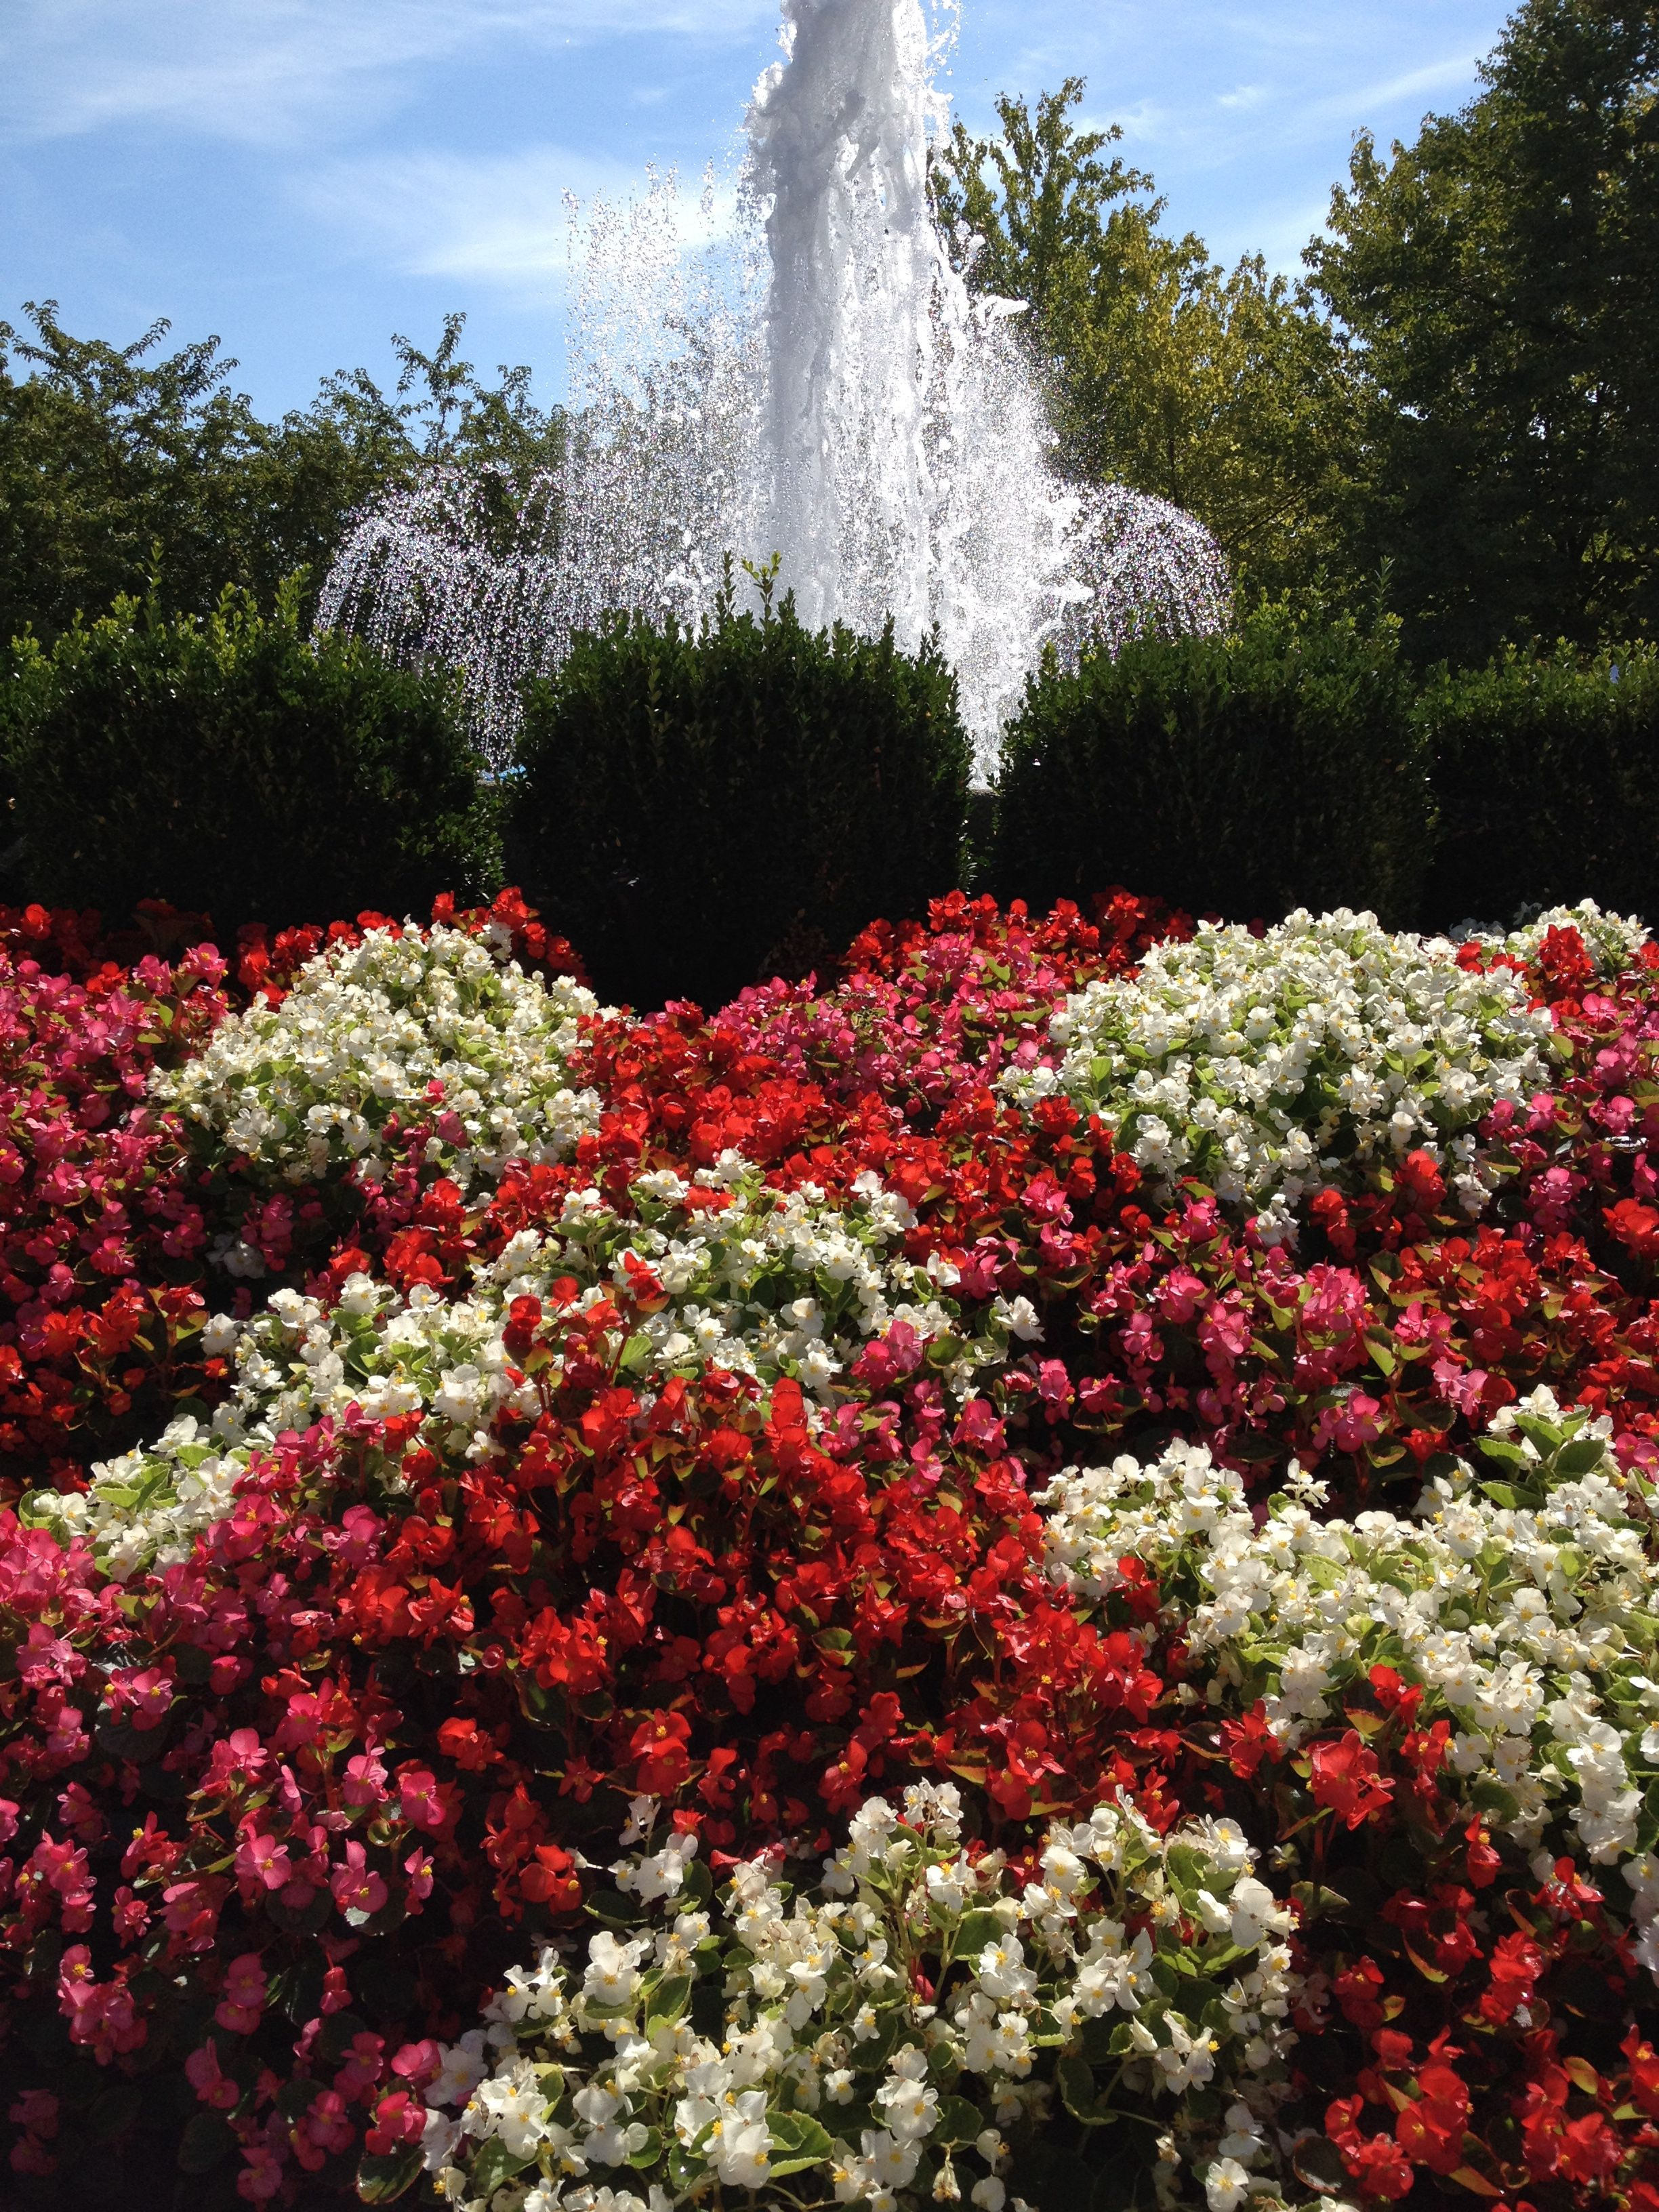 Arlington heights il park arlington heights places to